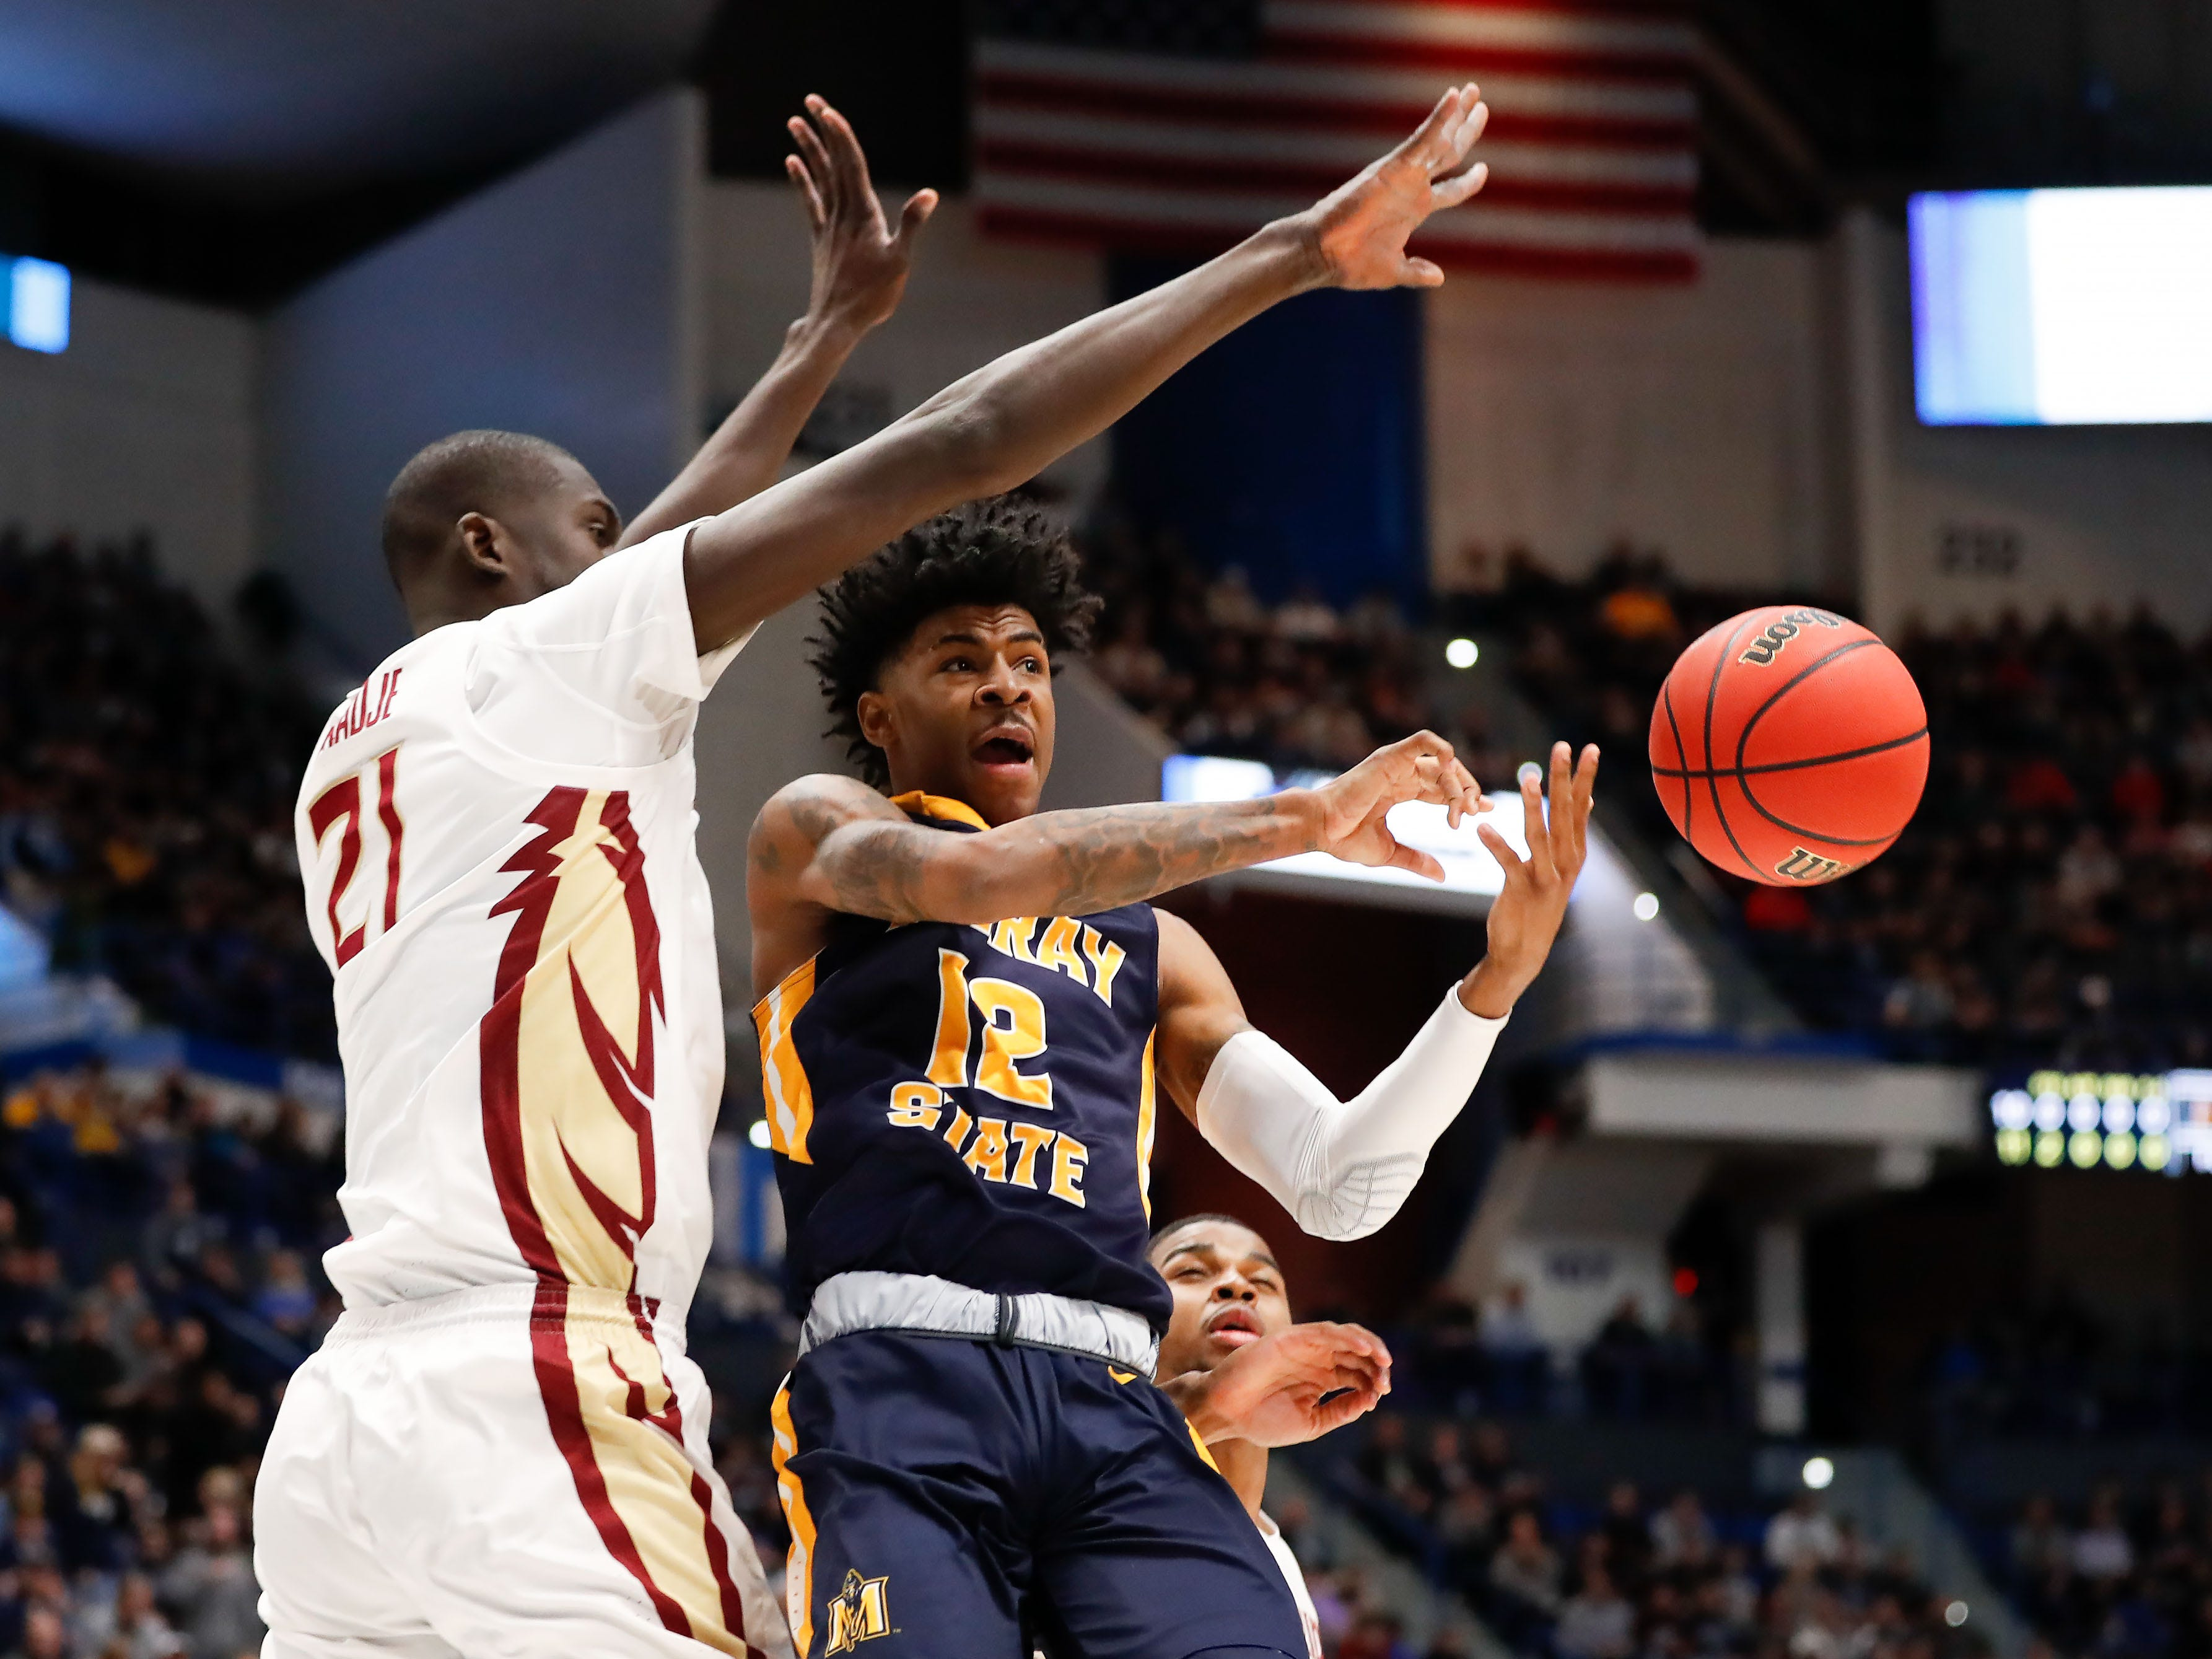 Mar 23, 2019; Hartford, CT, USA; Murray State Racers guard Ja Morant (12) passes the ball around Florida State Seminoles center Christ Koumadje (21) during the first half of a game in the second round of the 2019 NCAA Tournament at XL Center. Mandatory Credit: David Butler II-USA TODAY Sports